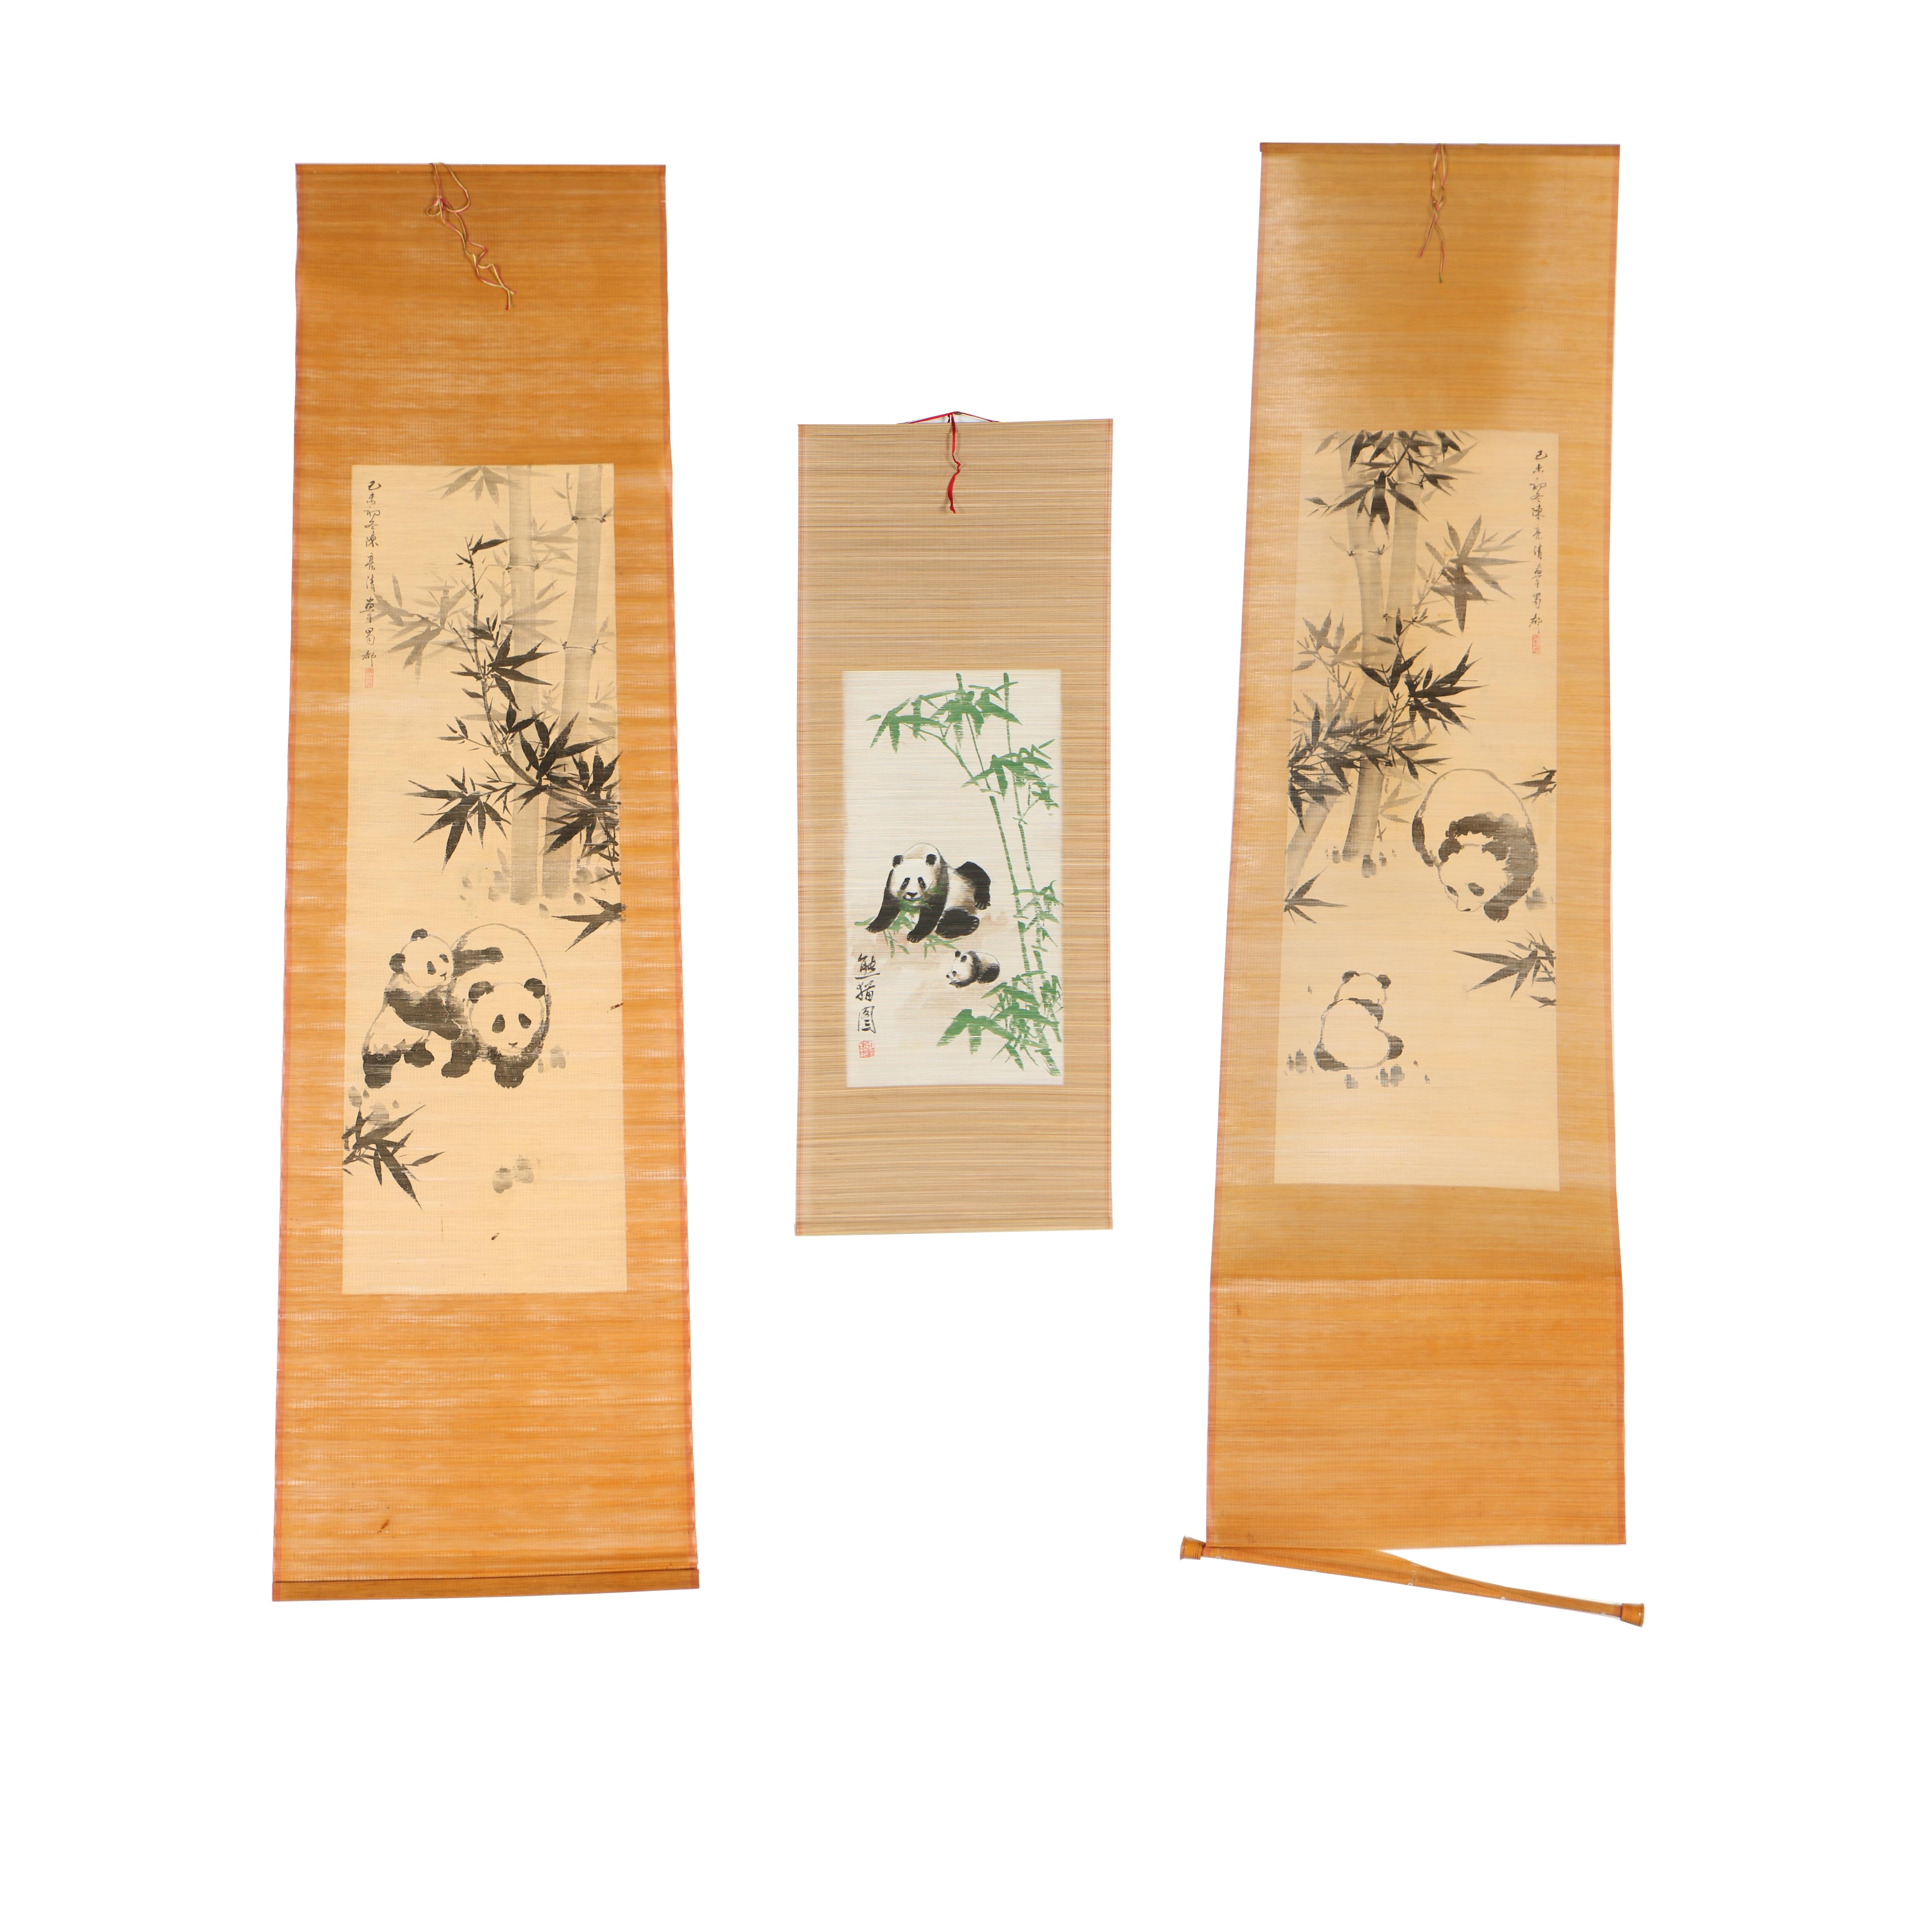 Chinese Ink Drawings and Gouache Painting on Bamboo of Pandas